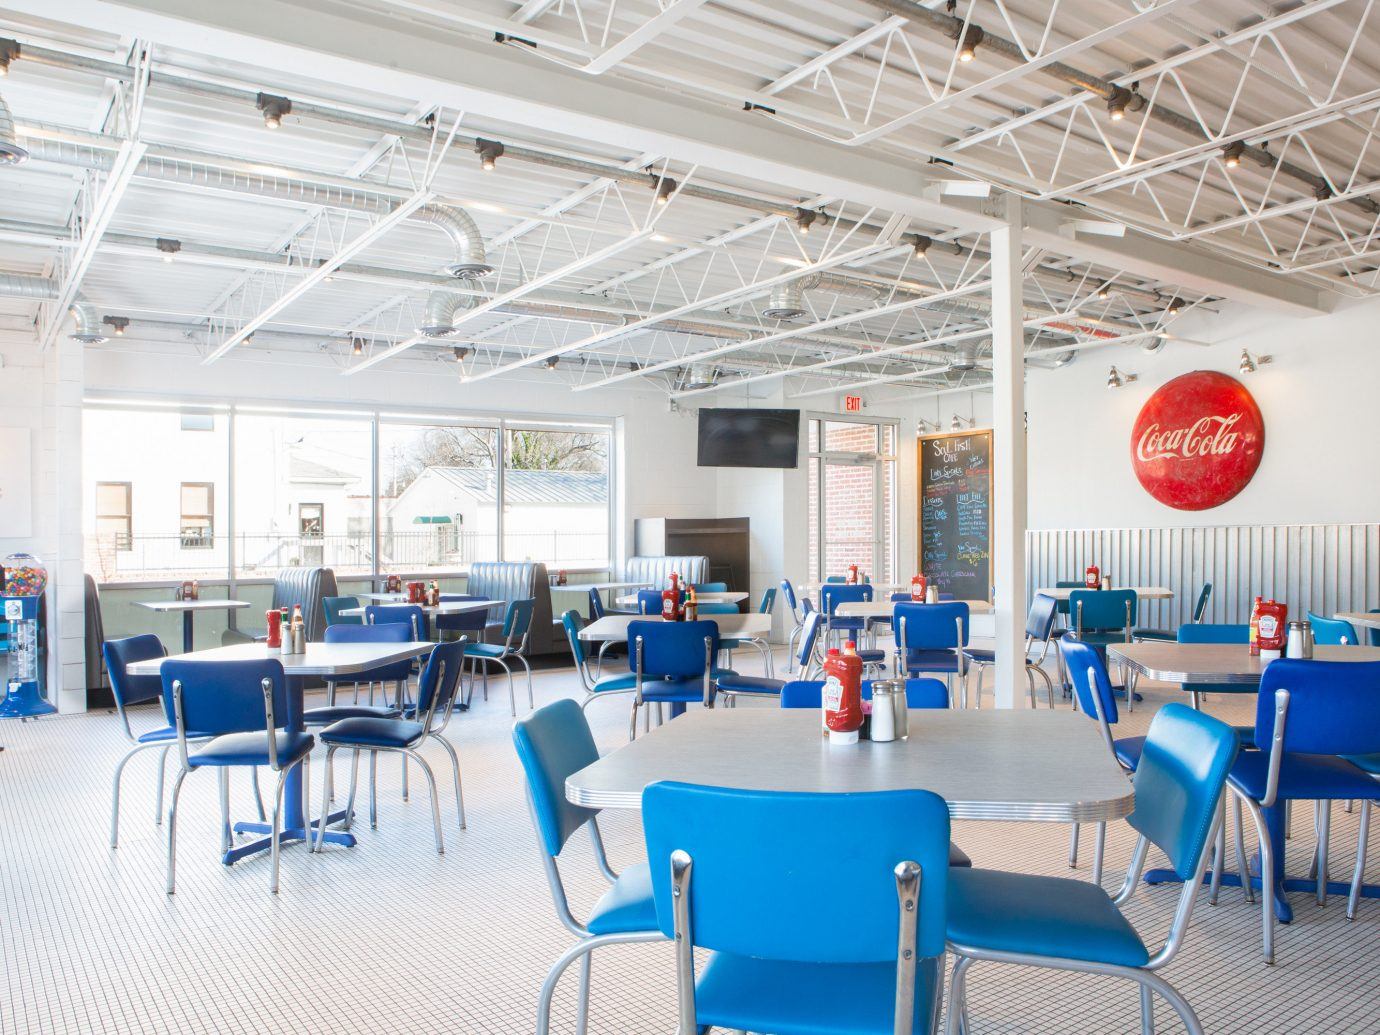 Food + Drink indoor chair ceiling floor table room cafeteria interior design restaurant office daylighting blue function hall area furniture several